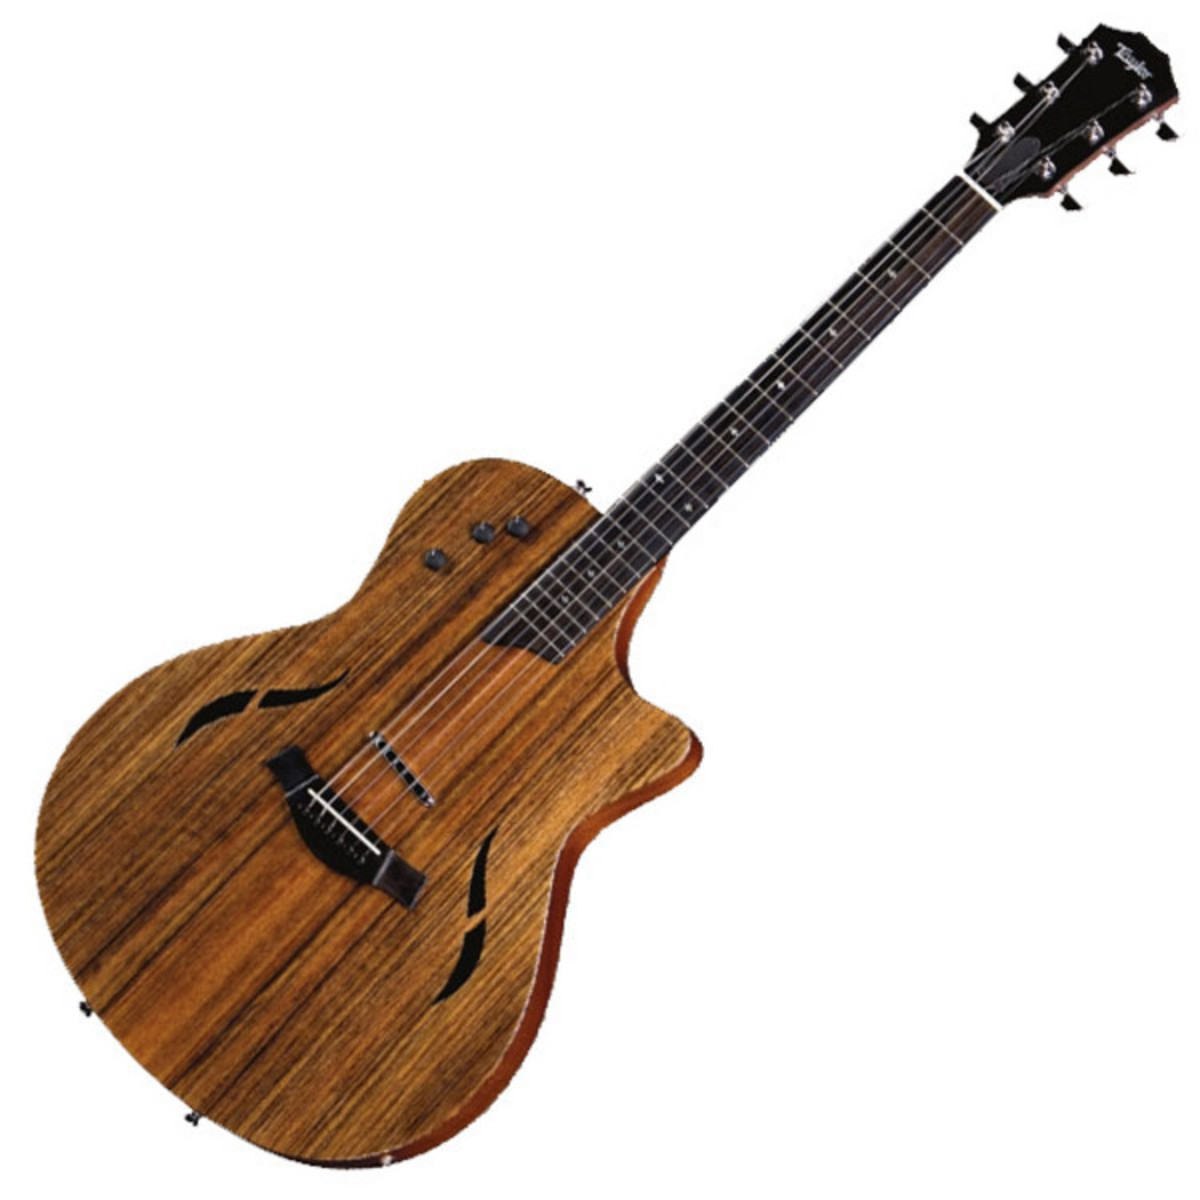 taylor t5 x classic hollowbody electric guitar nearly new at. Black Bedroom Furniture Sets. Home Design Ideas